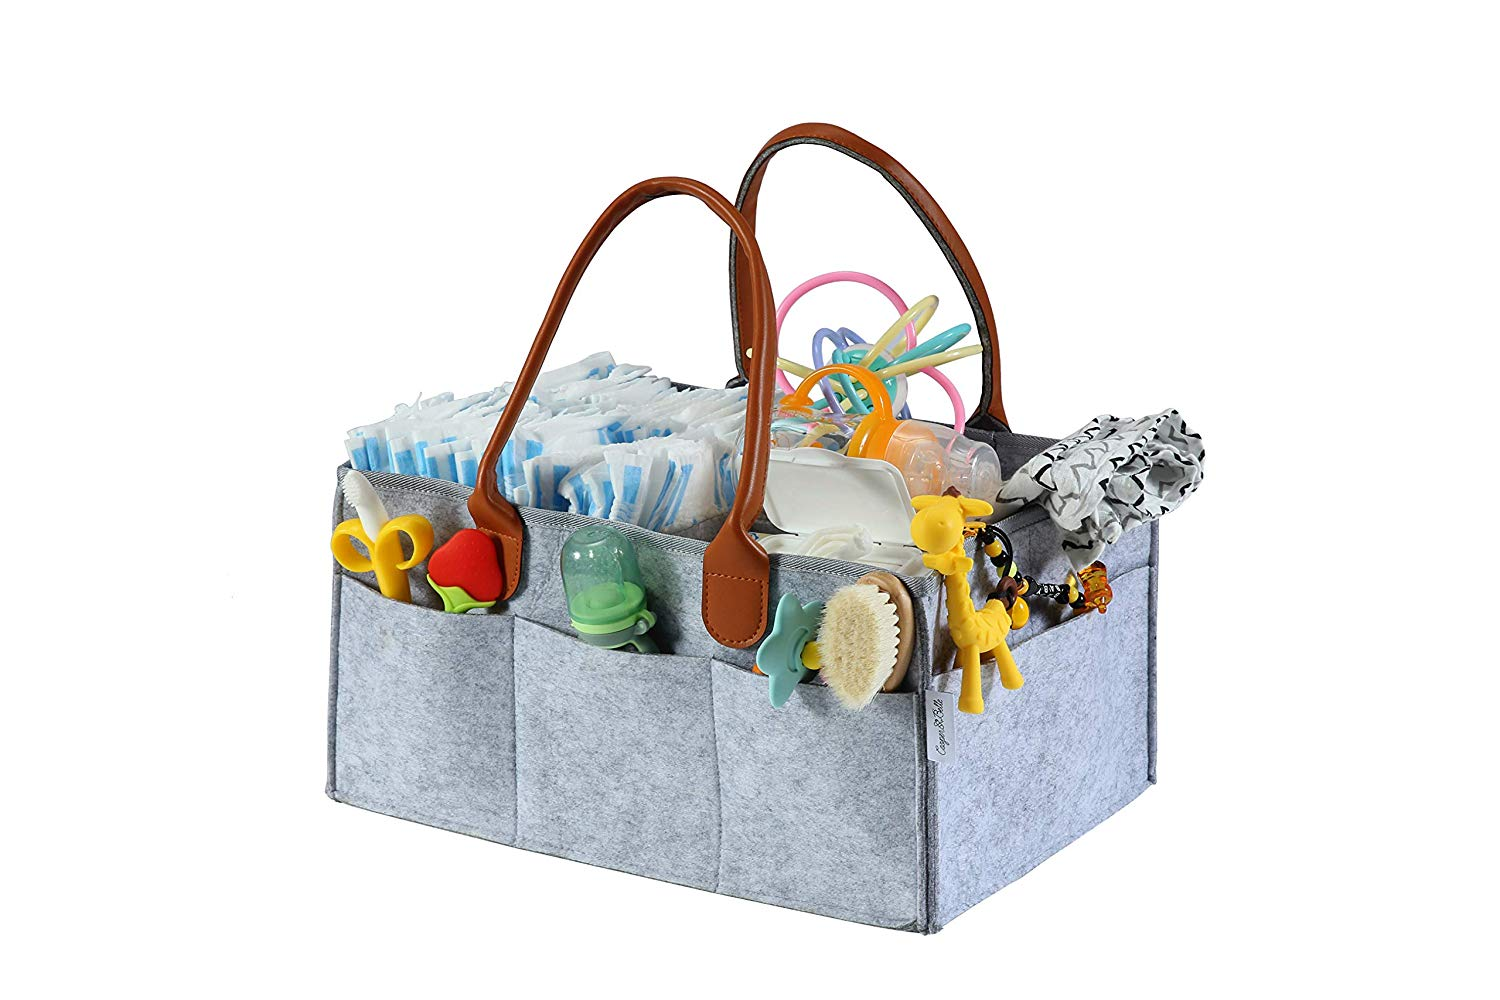 Premium Diaper Caddy by Cooper & Belle